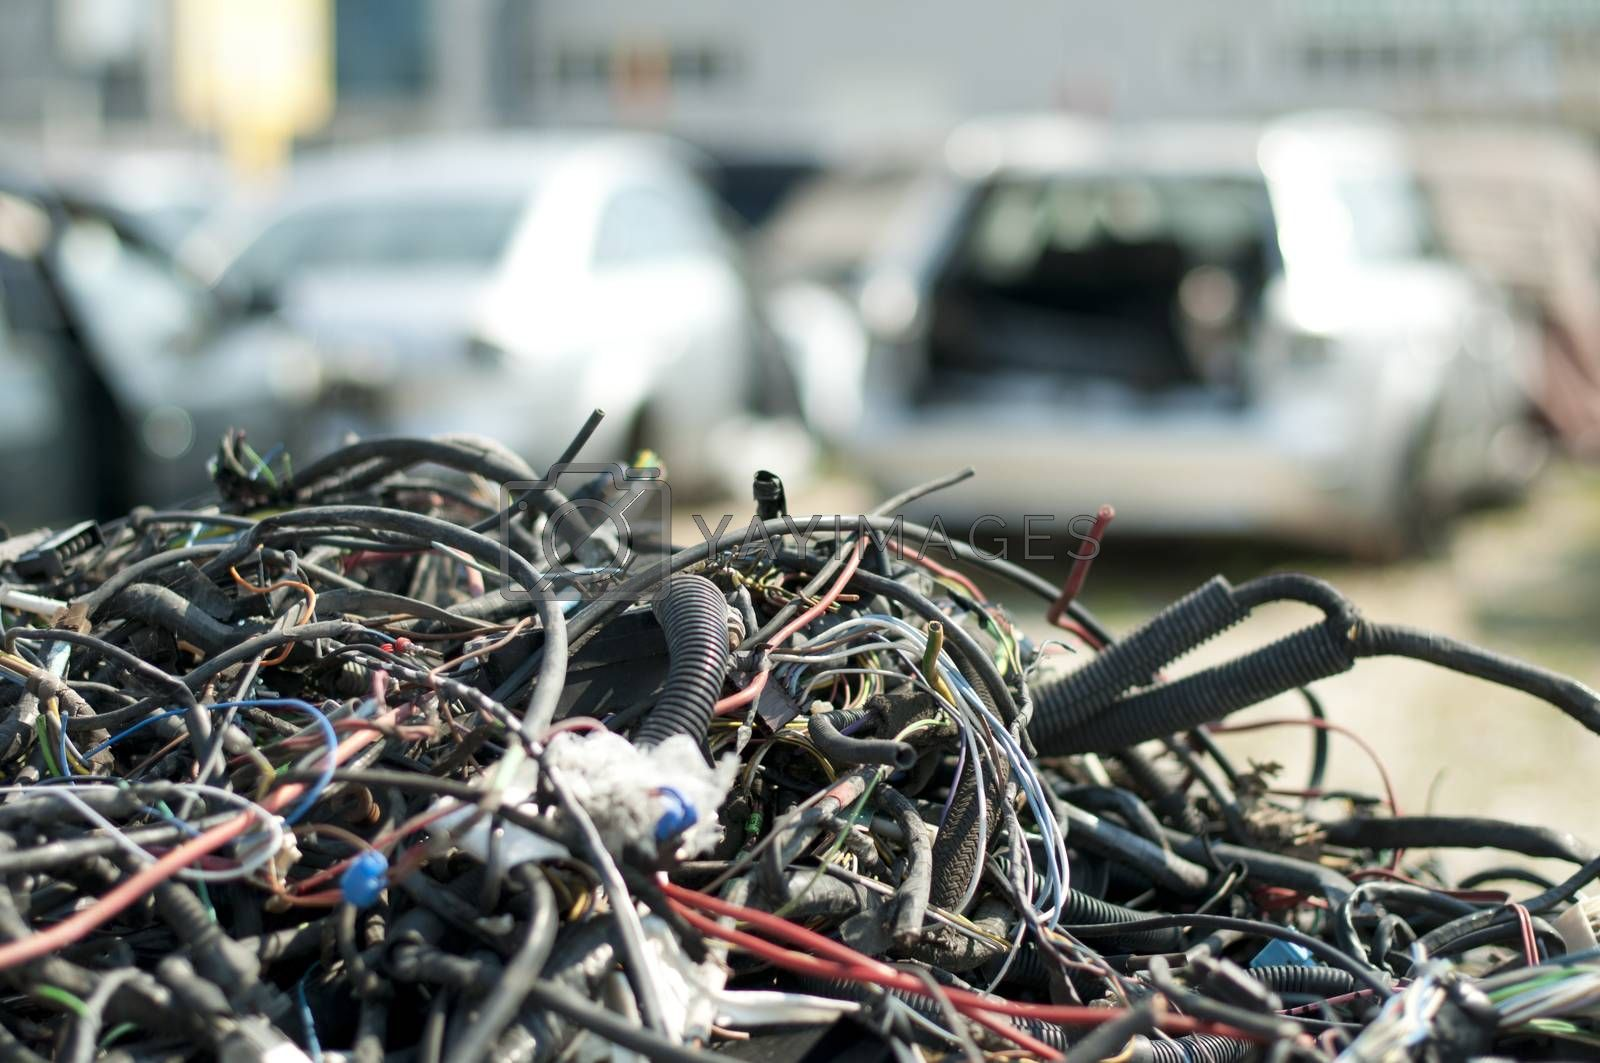 Old car parts and cables in Automorgue. Blurred cars on background